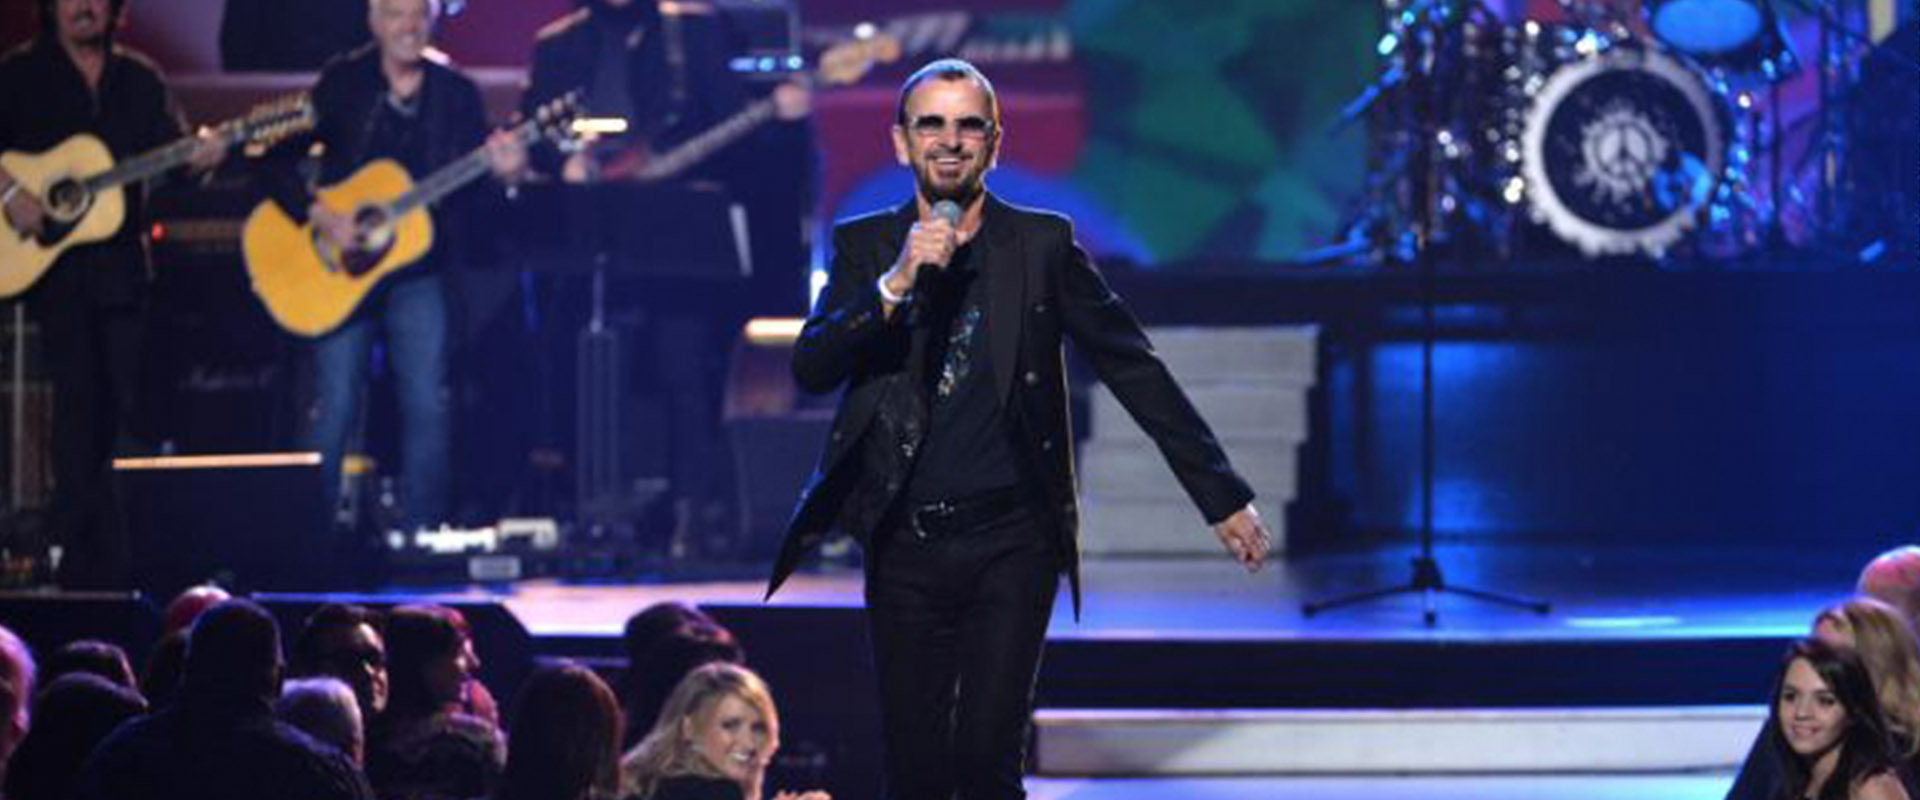 Ringo Starr – Here's to the Nights